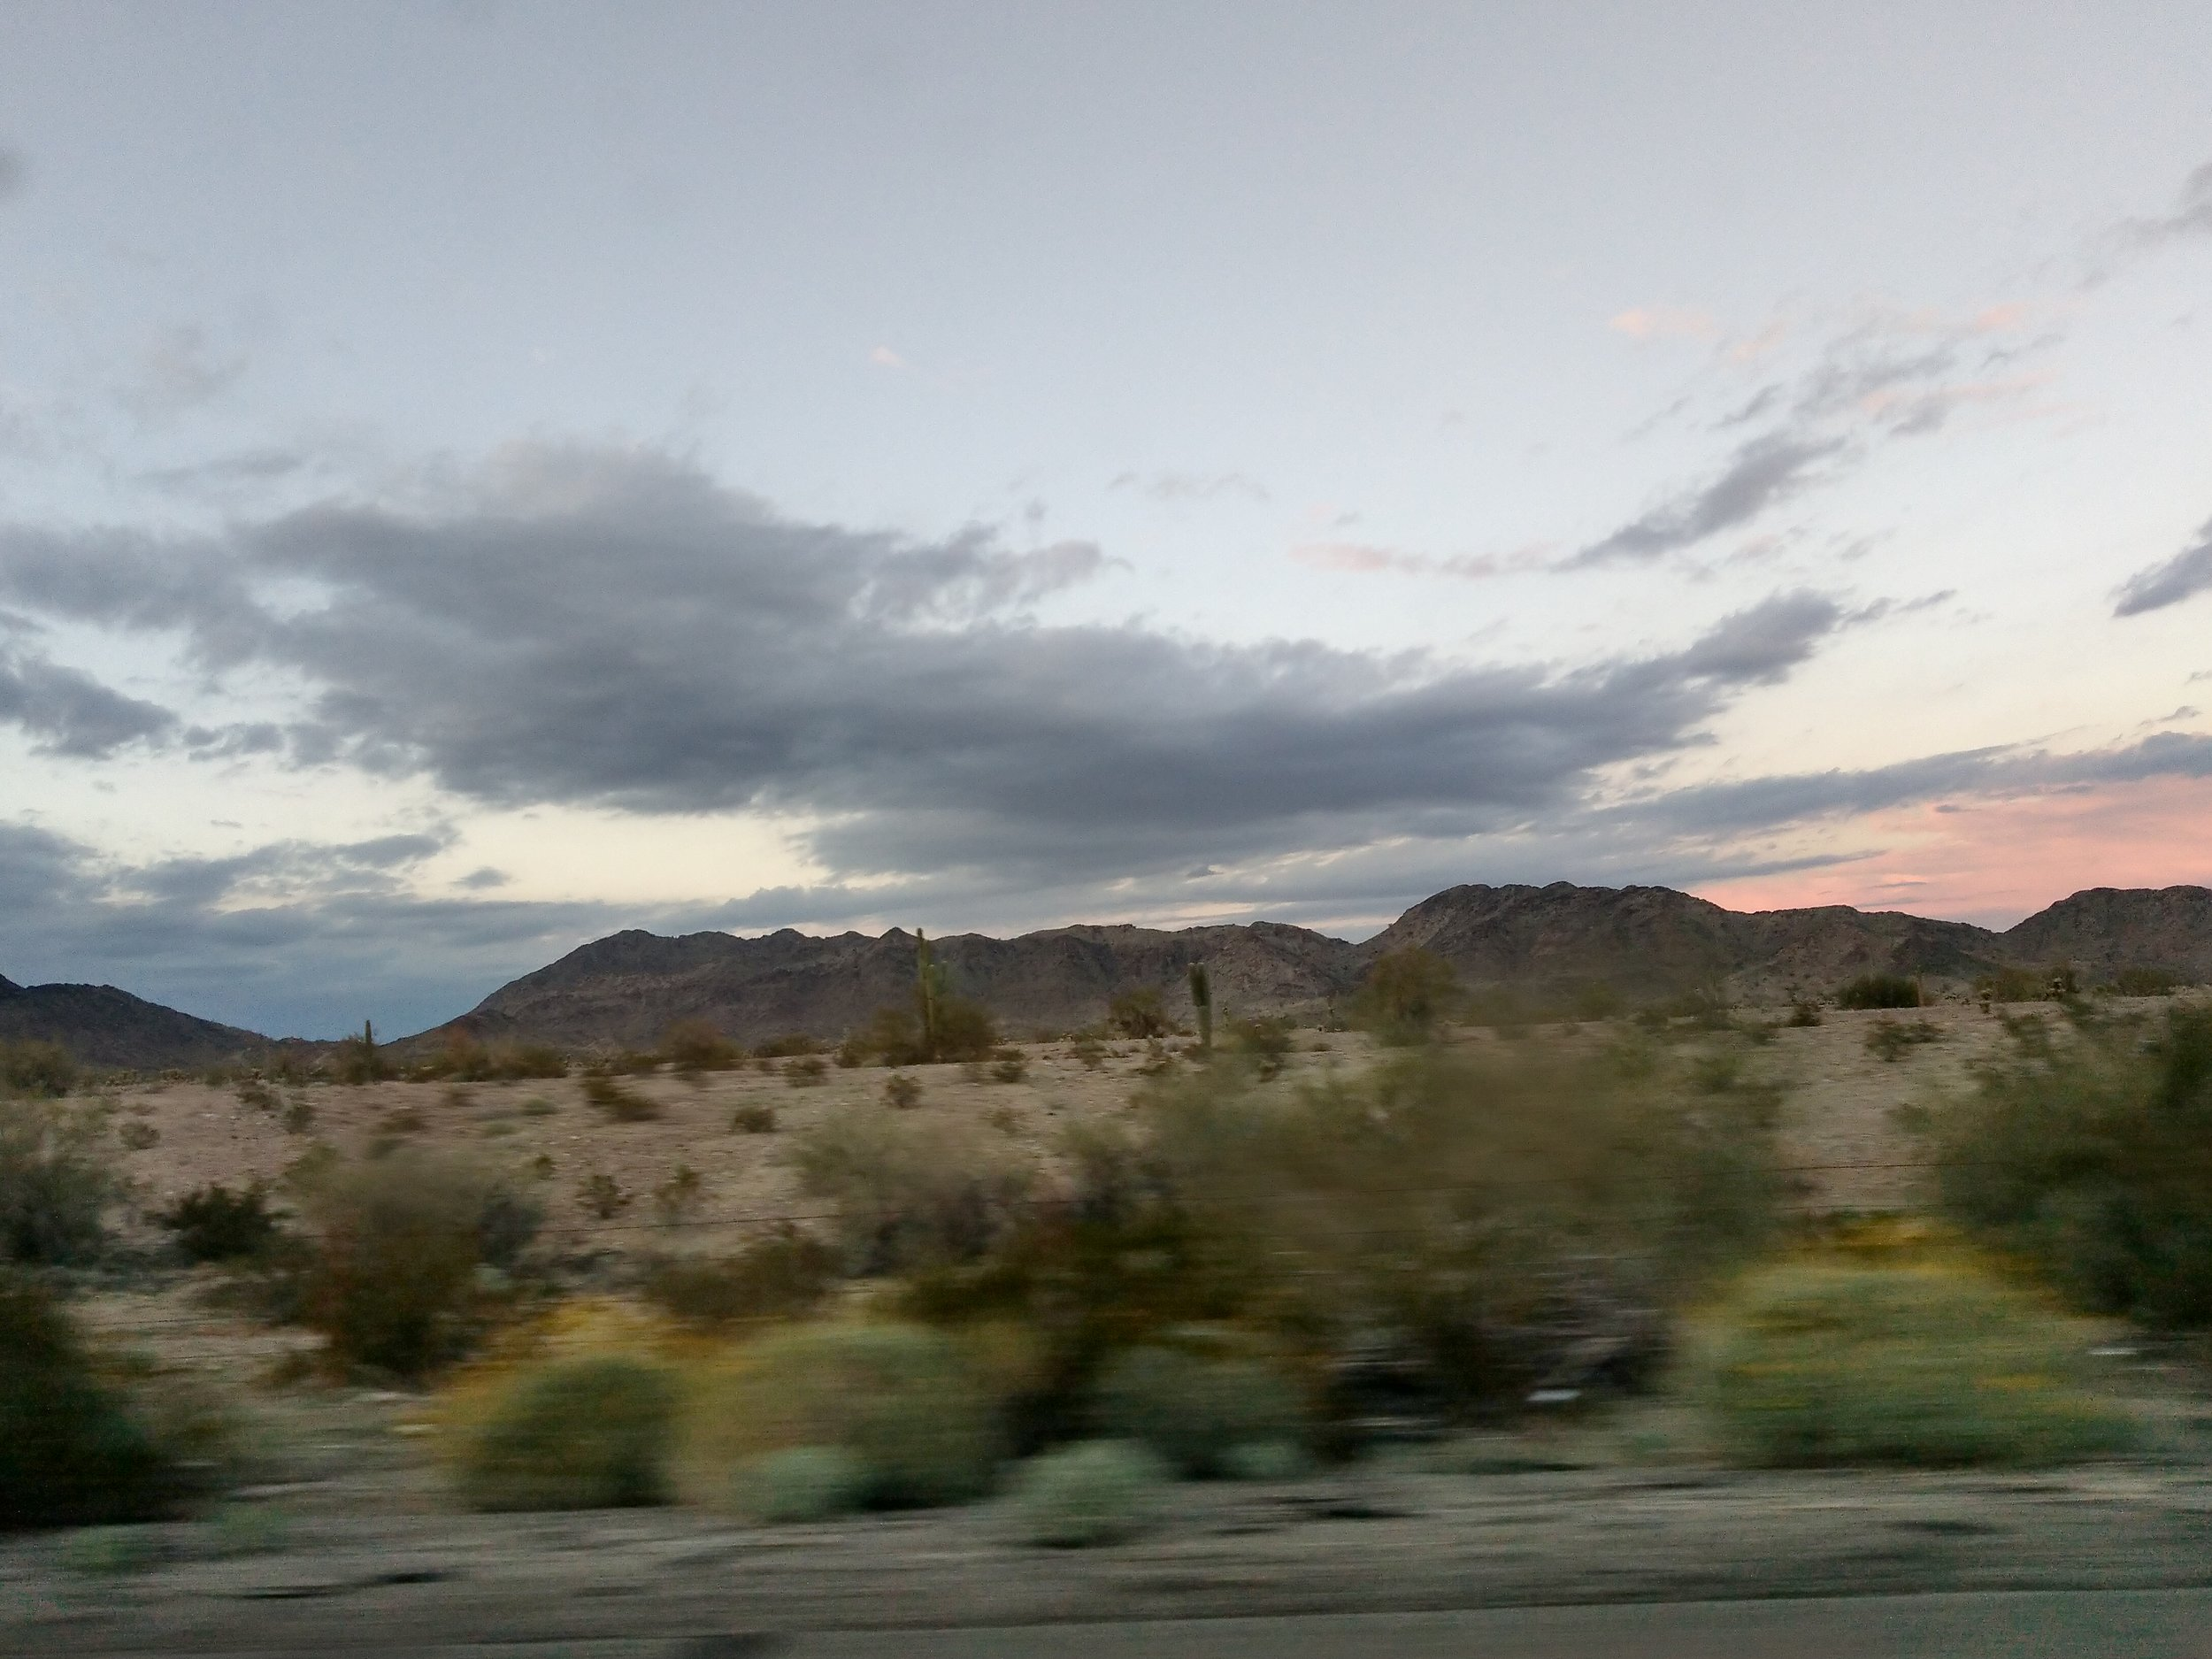 The foreground's a blur as we were starting to drive back, but a few saguaro cacti are visible in the background.